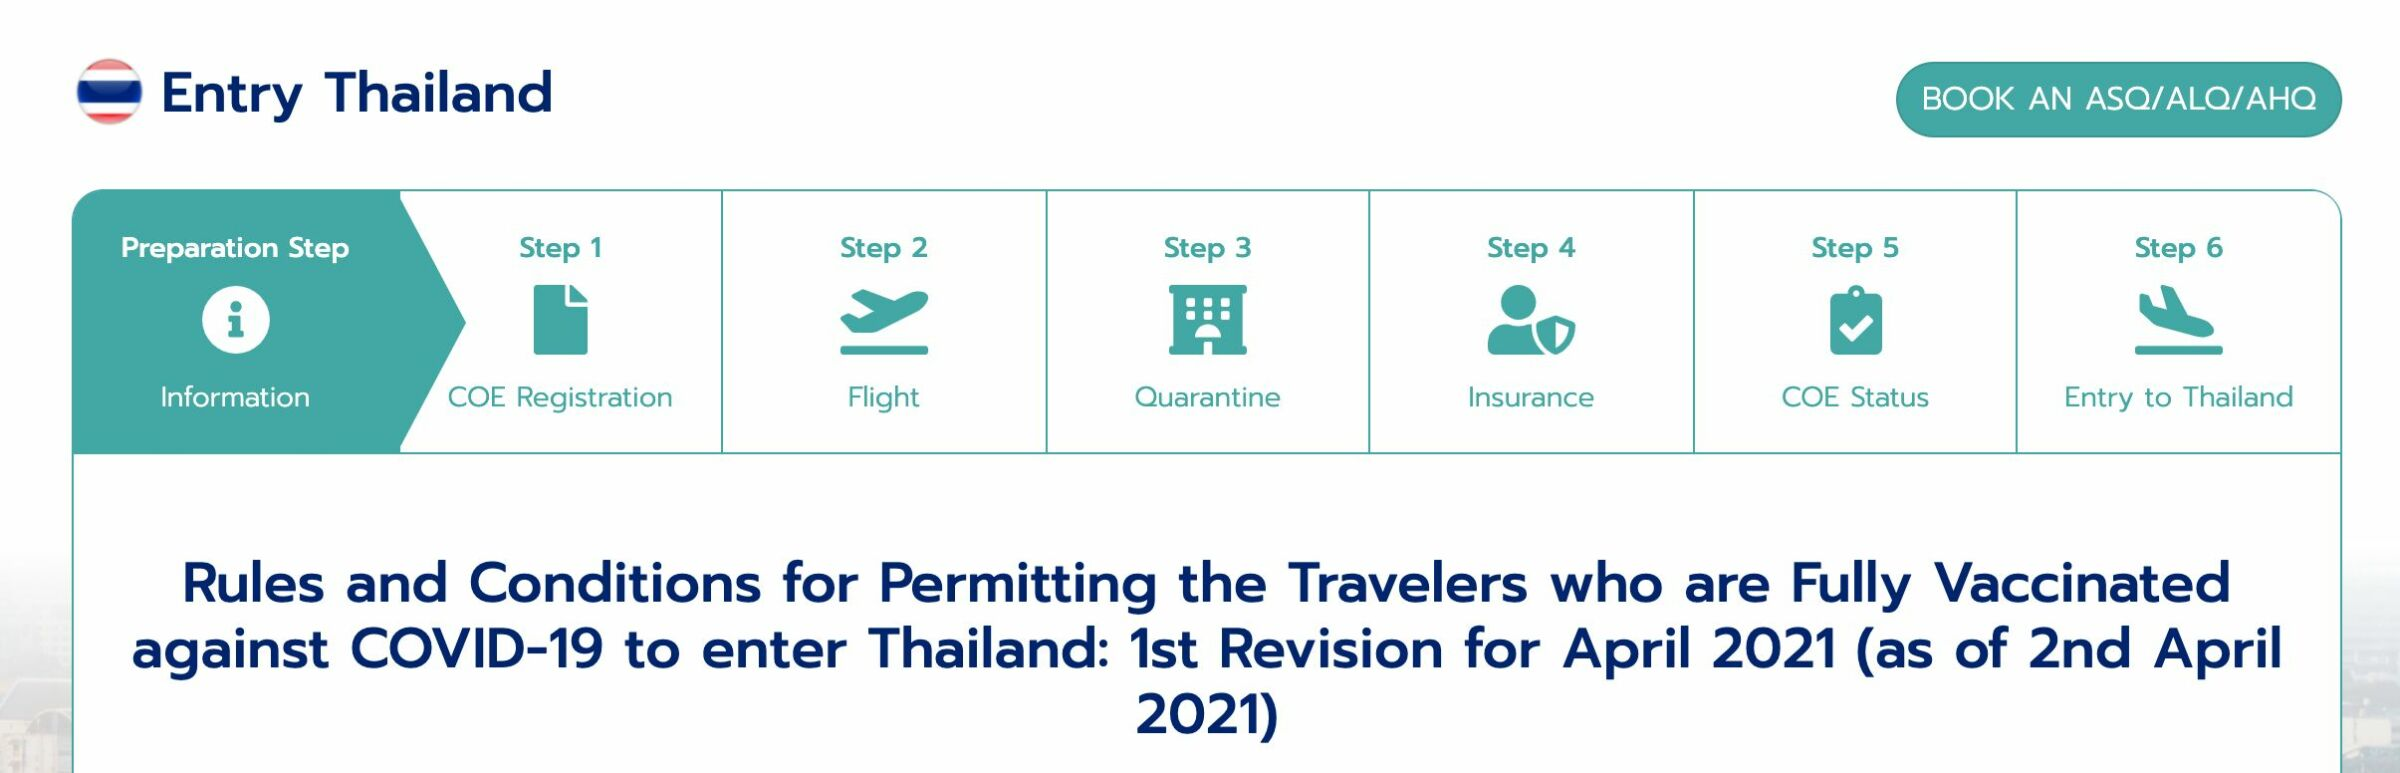 'Entry Thailand' website launched to facilitate process for international travellers | News by Thaiger